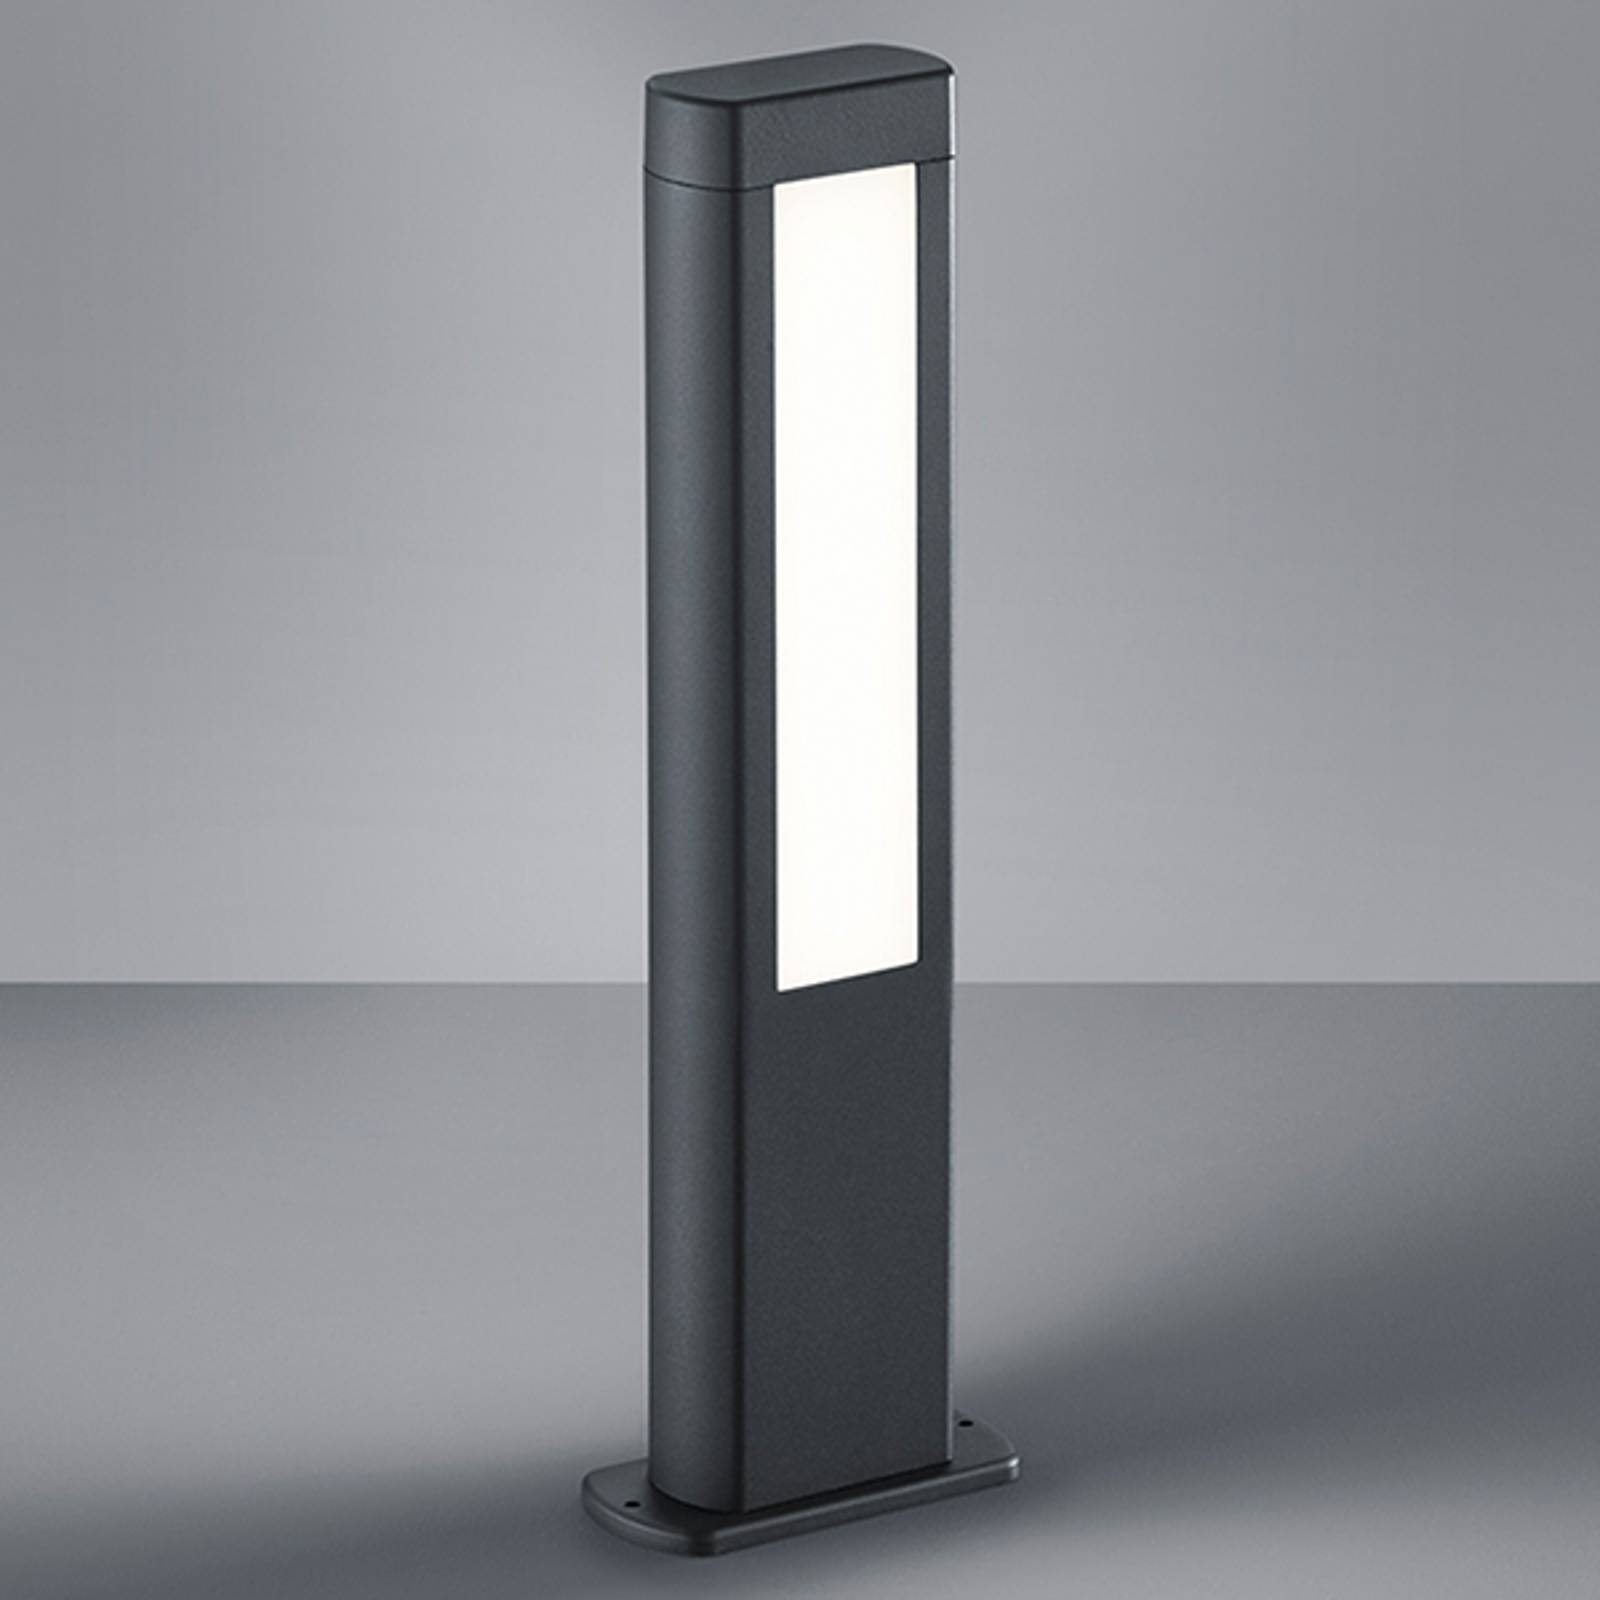 50 cm high - LED pillar light Rhine from Trio Lighting